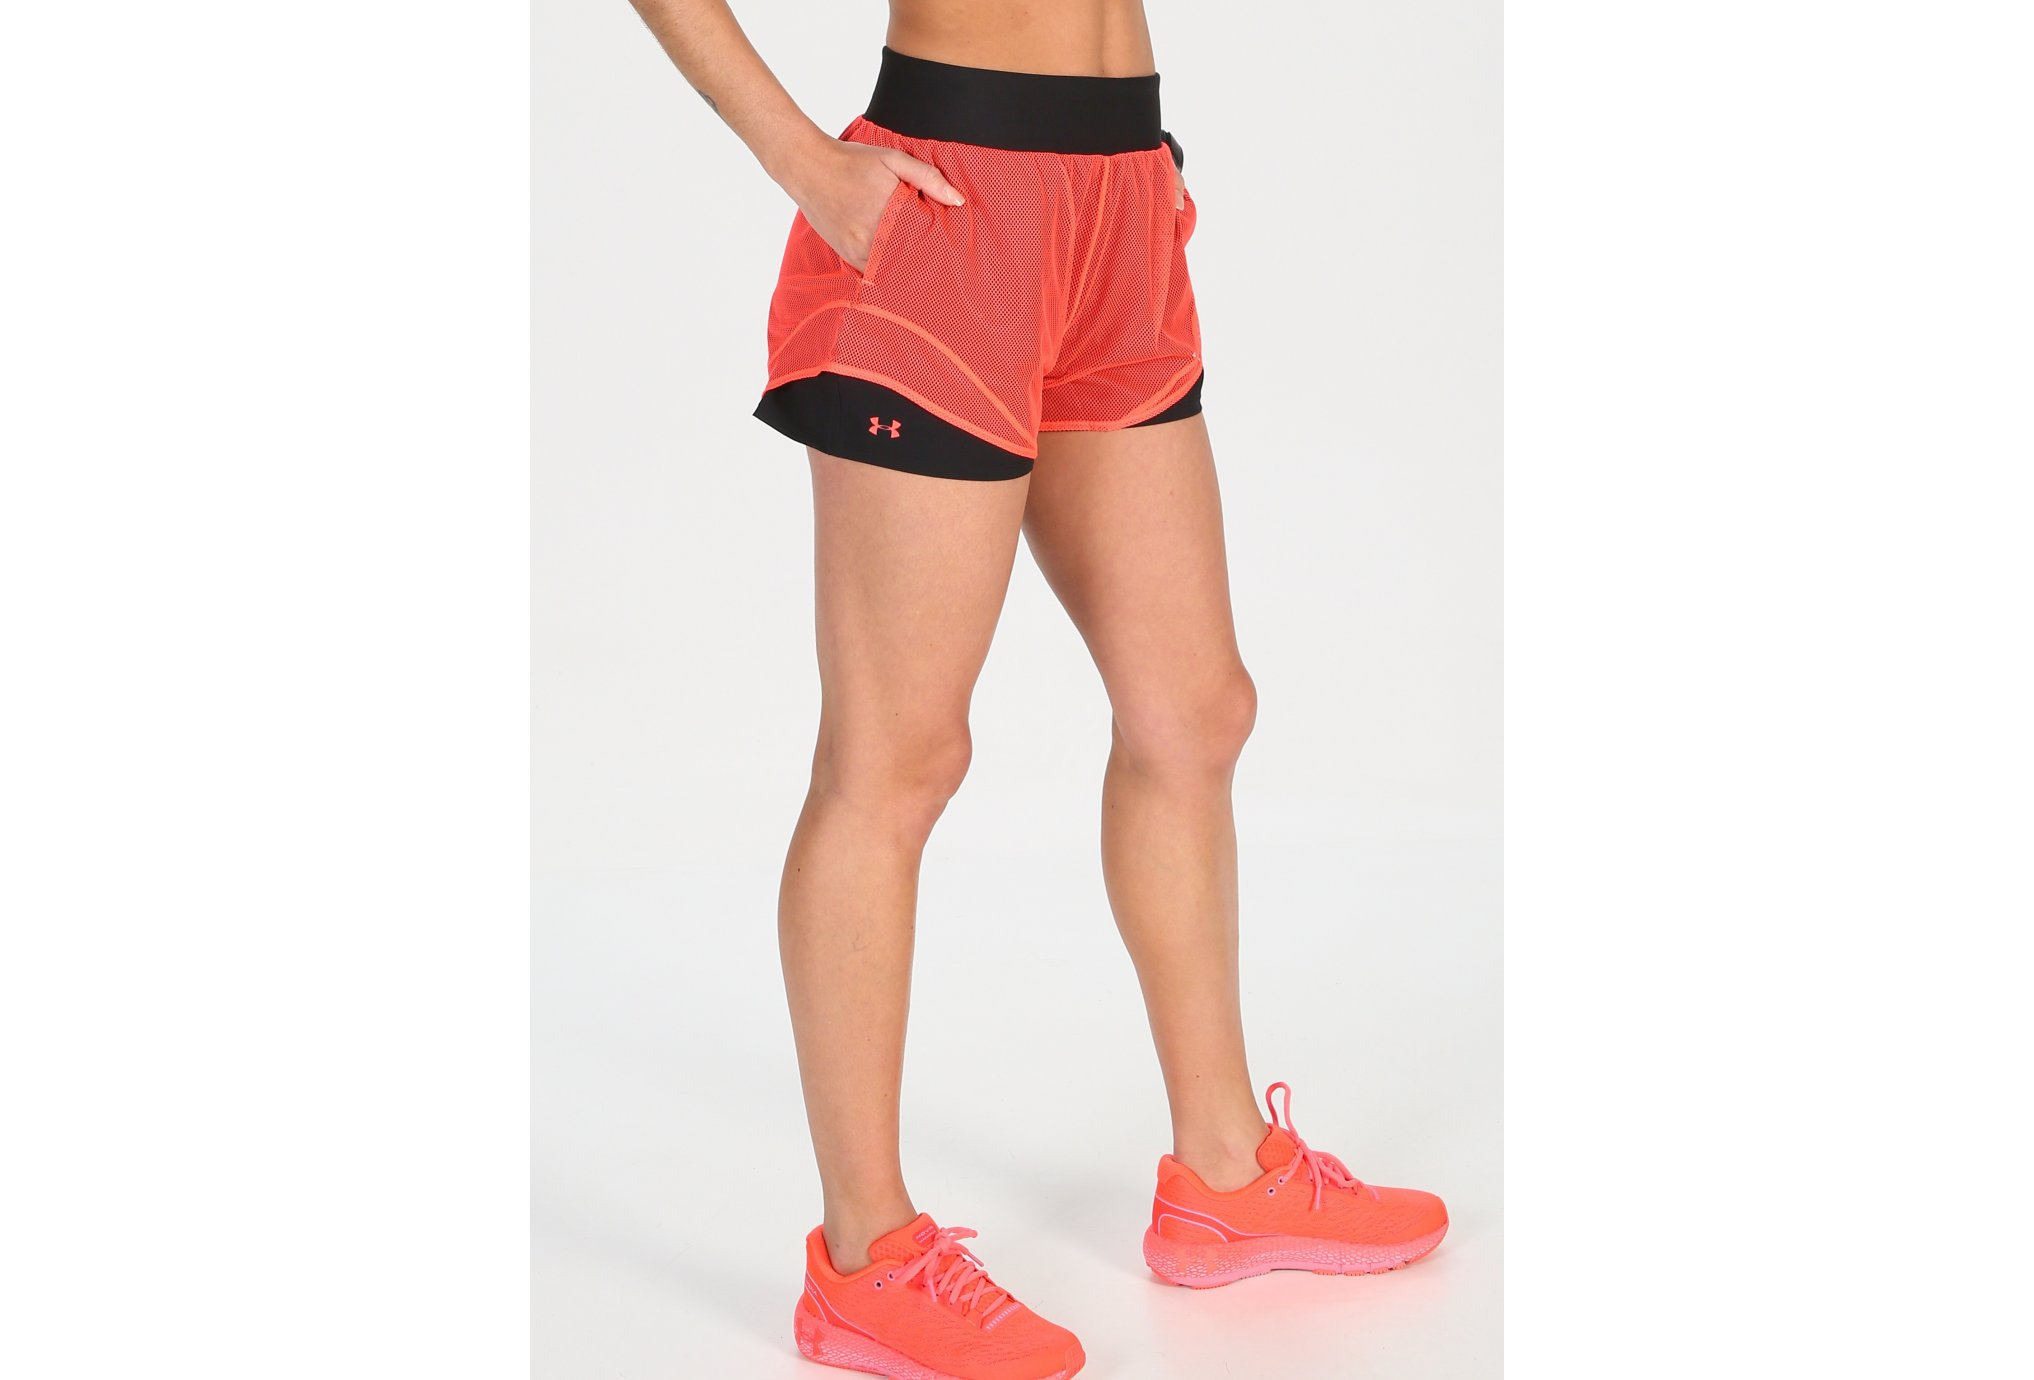 Under Armour Warrior Mesh Layer W Diététique Vêtements femme